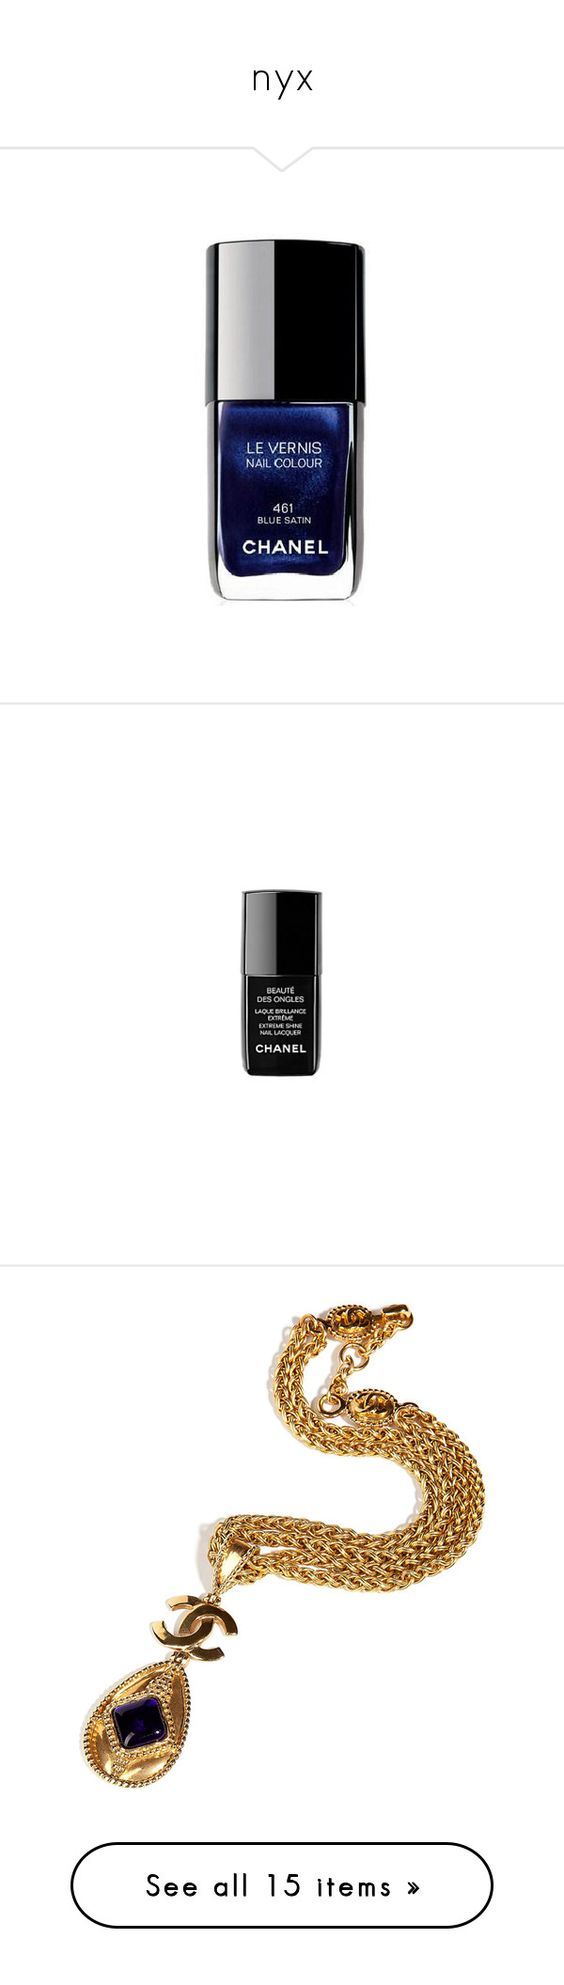 """nyx"" by majahihi ❤ liked on Polyvore featuring beauty products, nail care, nail polish, fillers, makeup, beauty, blue fillers, chanel nail colour, chanel nail polish and chanel nail color"